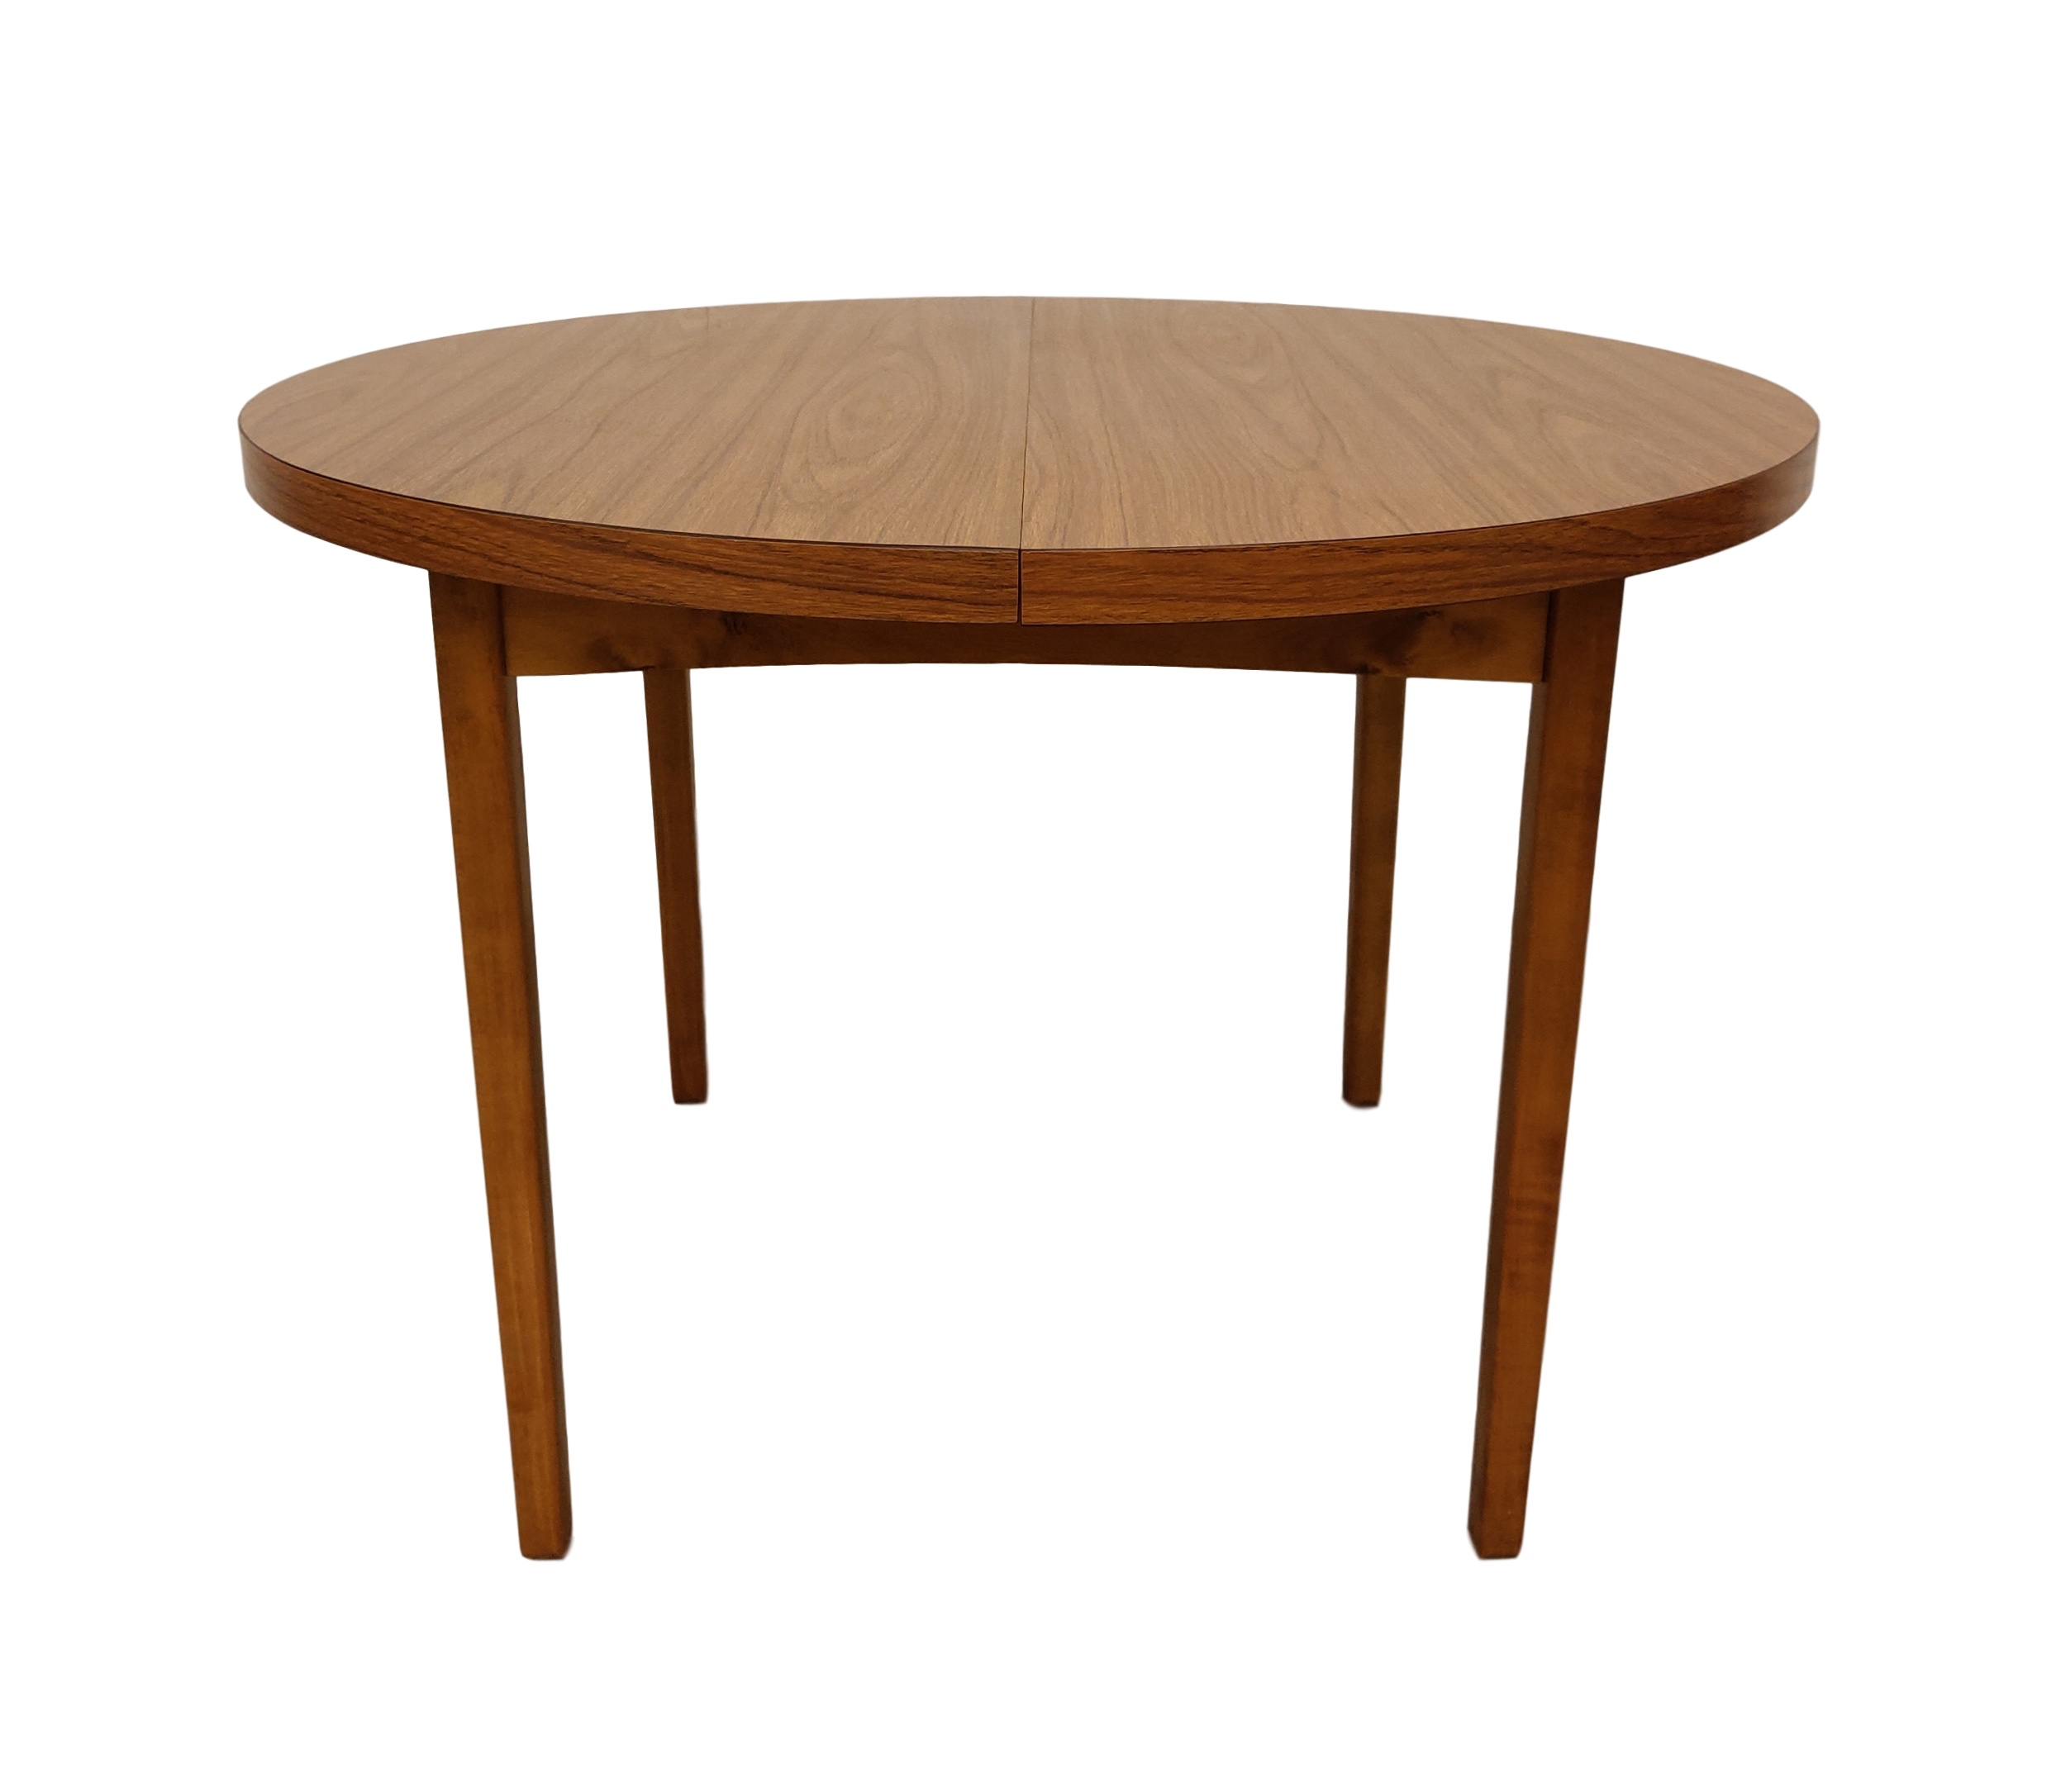 Round Extendable Dining Table 60 S Nordic Vintage Shop